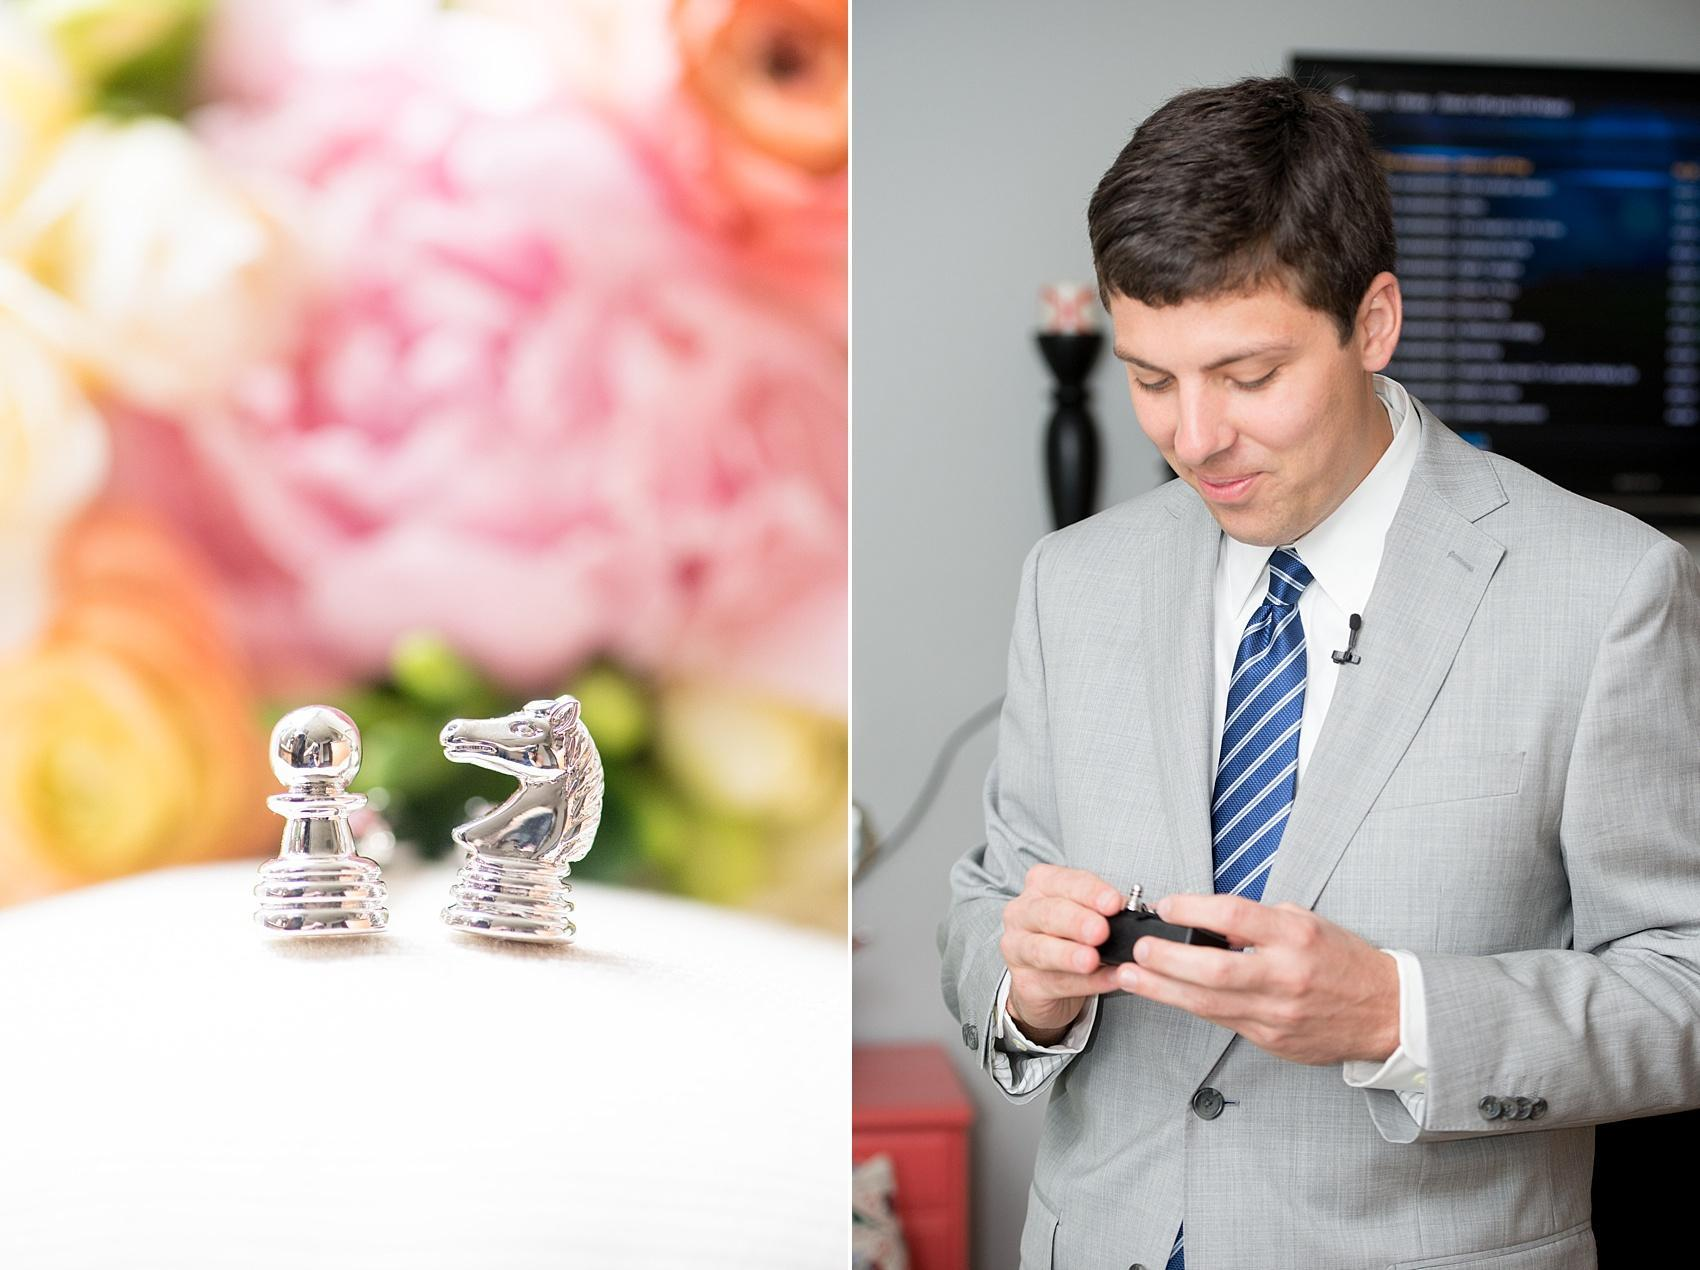 Mikkel Paige Photography photos of the groom opening his gift from the bride of chess piece cufflinks.